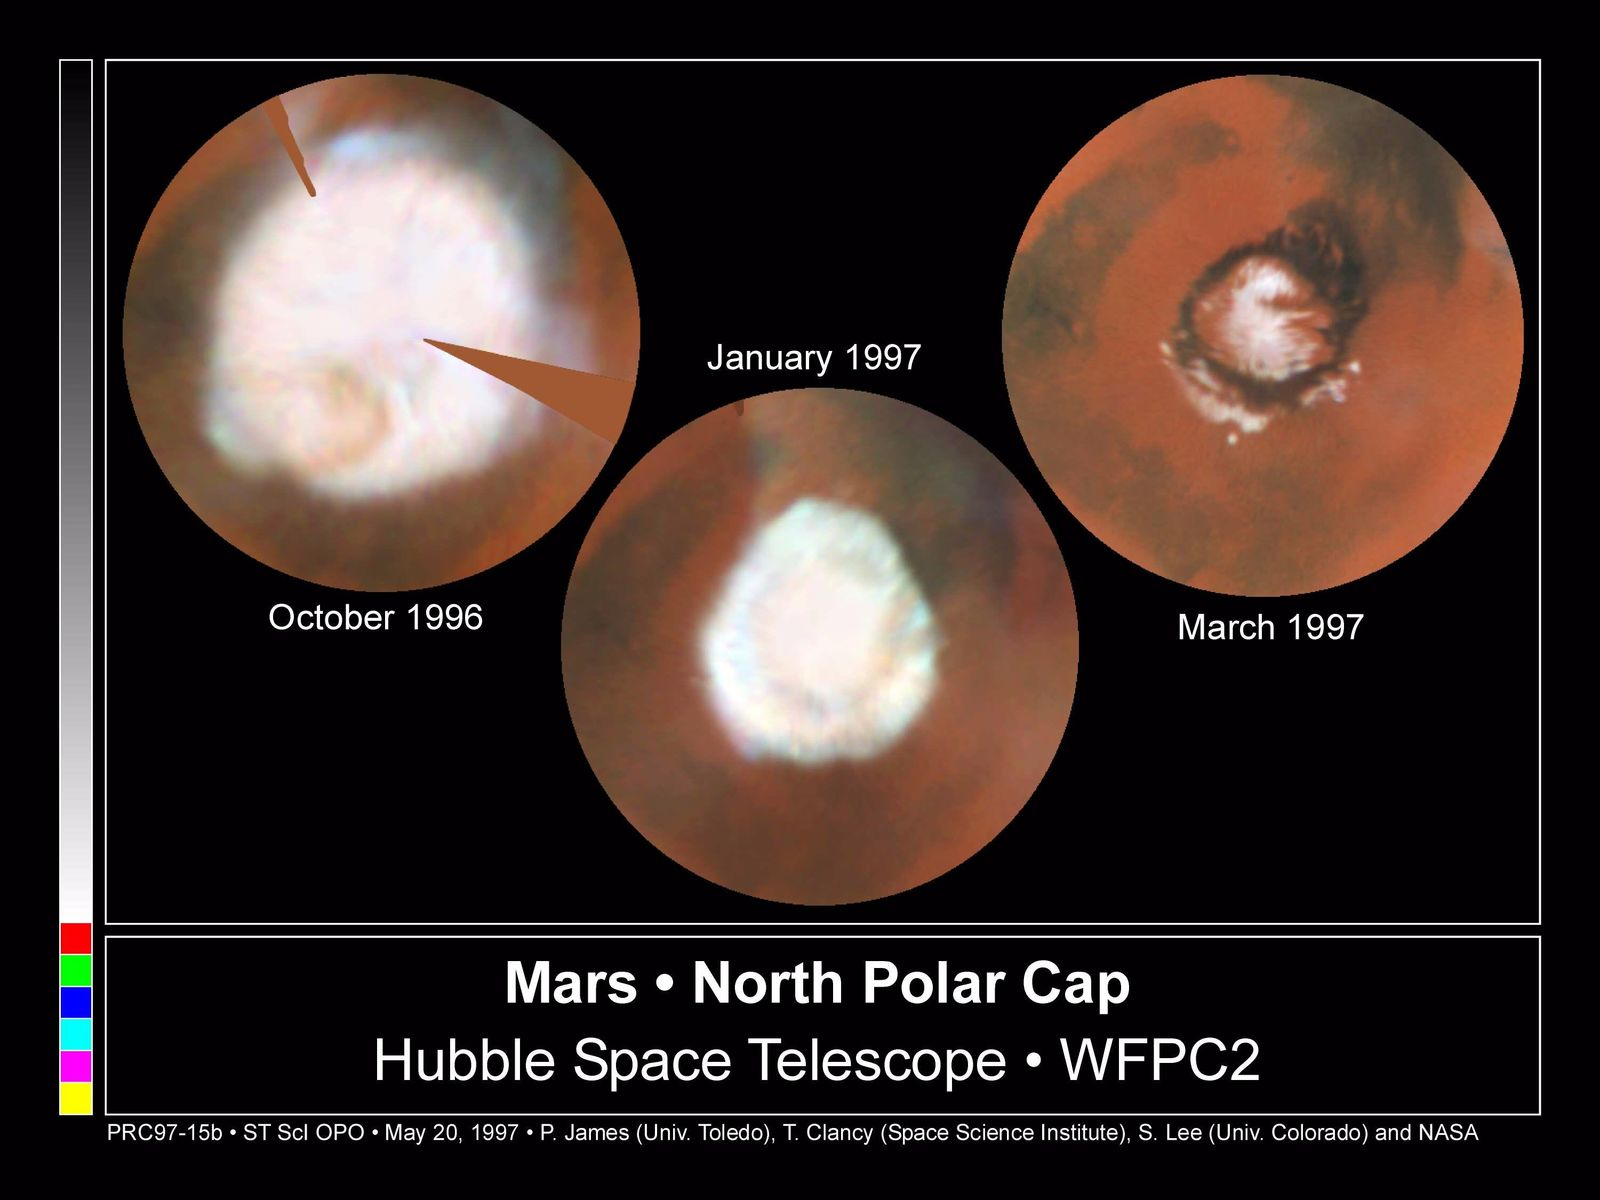 Space Images Seasonal Changes In Mars North Polar Ice Cap Images, Photos, Reviews